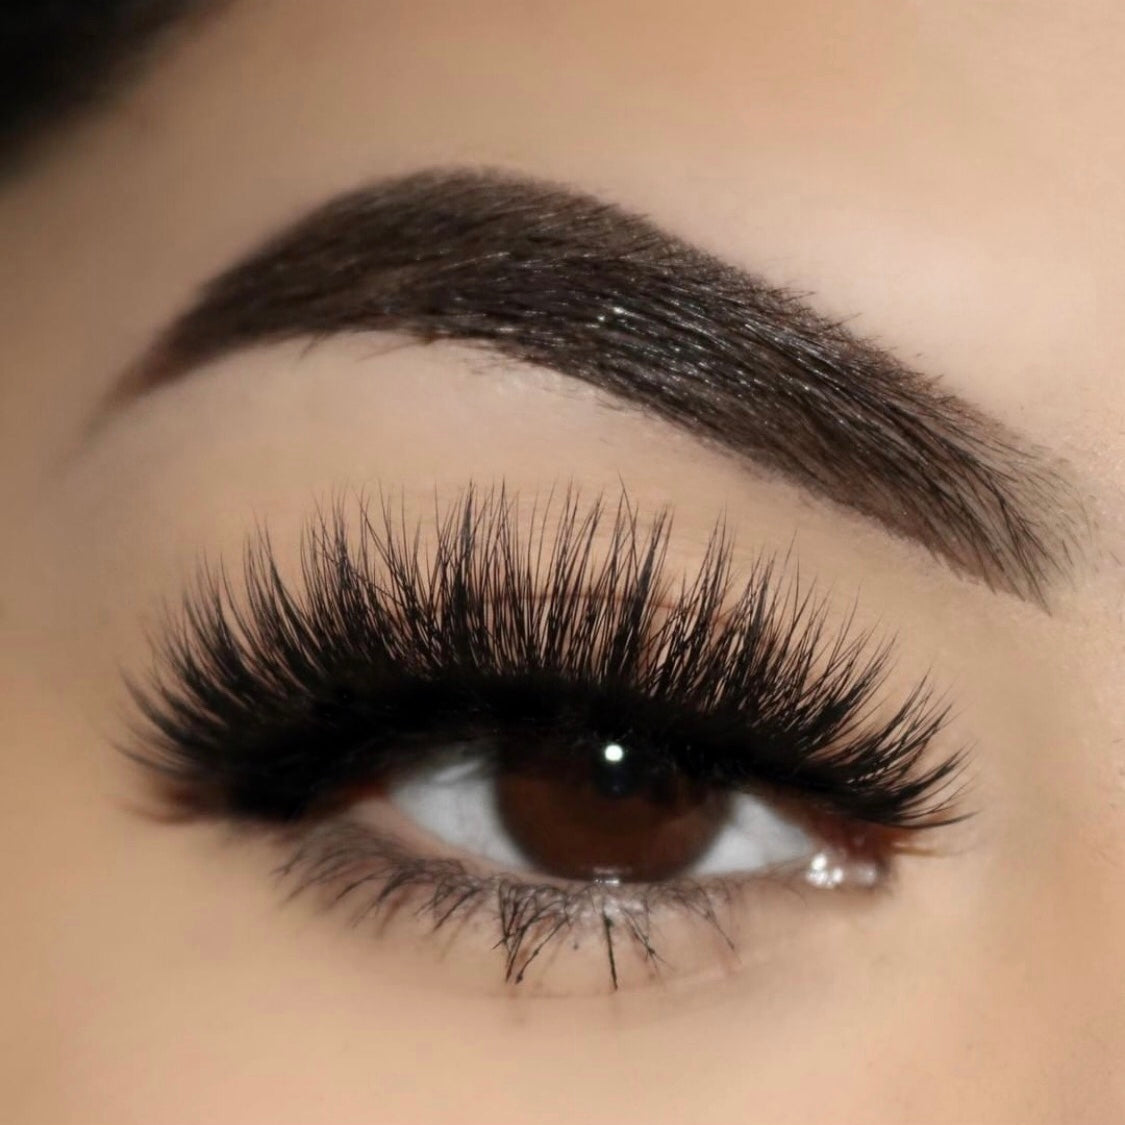 Roma Luxury 3D Faux Mink Lashes